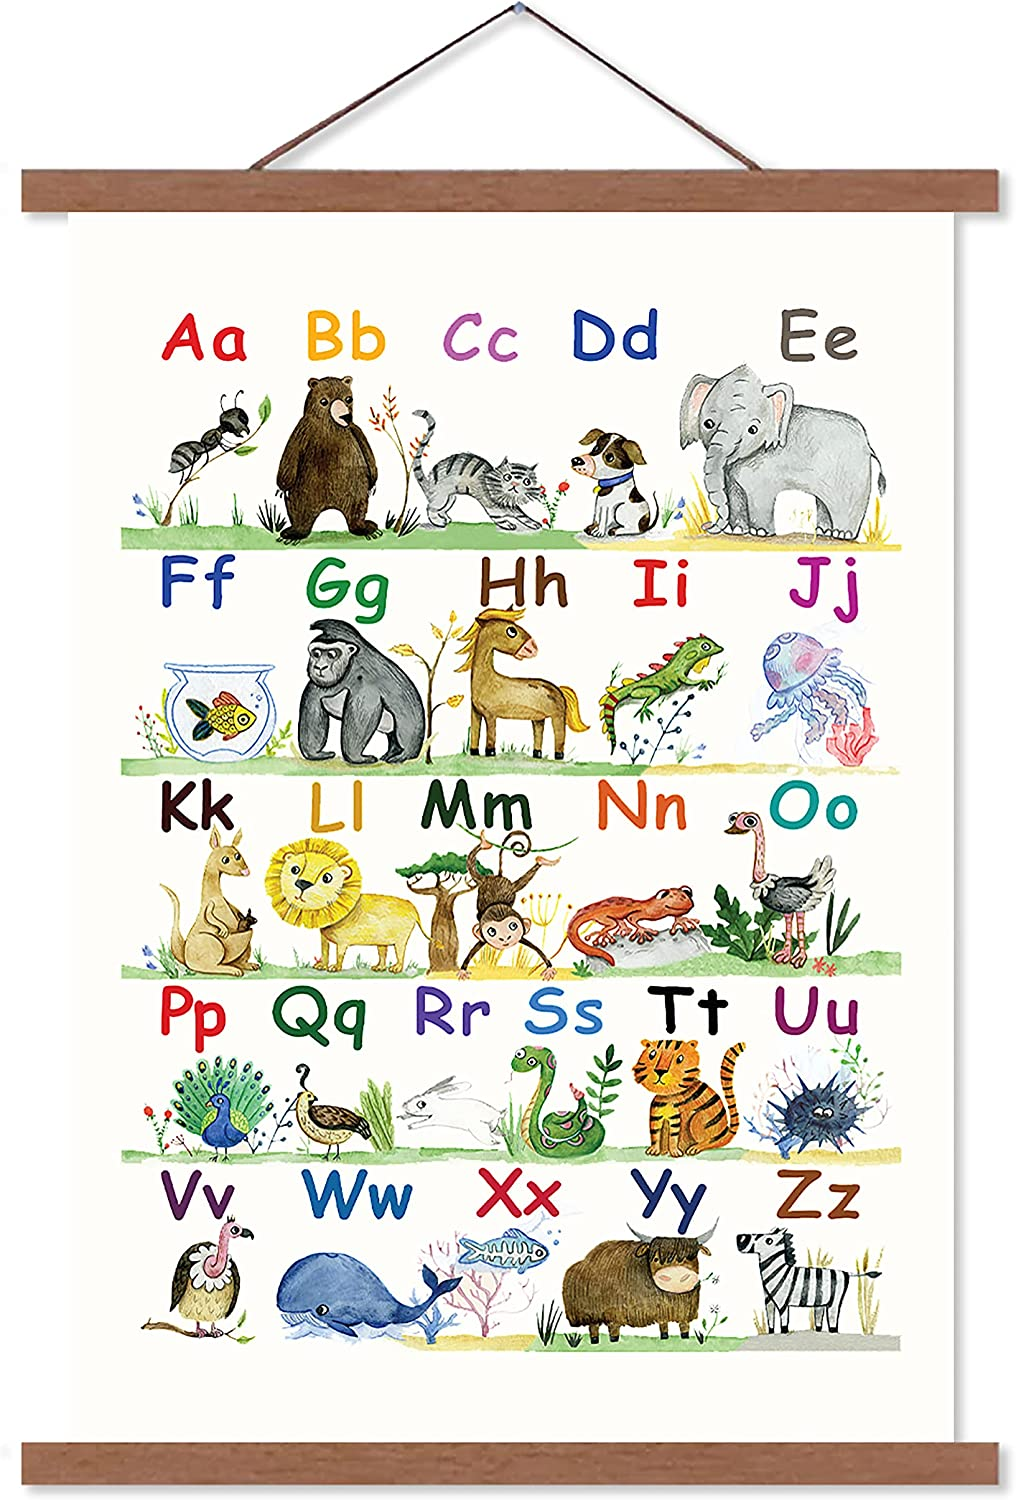 Alphabet Poster for Classroom Decor   ABC Poster for Toddlers Wall Playroom  & Nursery Decor   Canvas Wall Art   20x20   Kids Alphabet Chart Wall ...